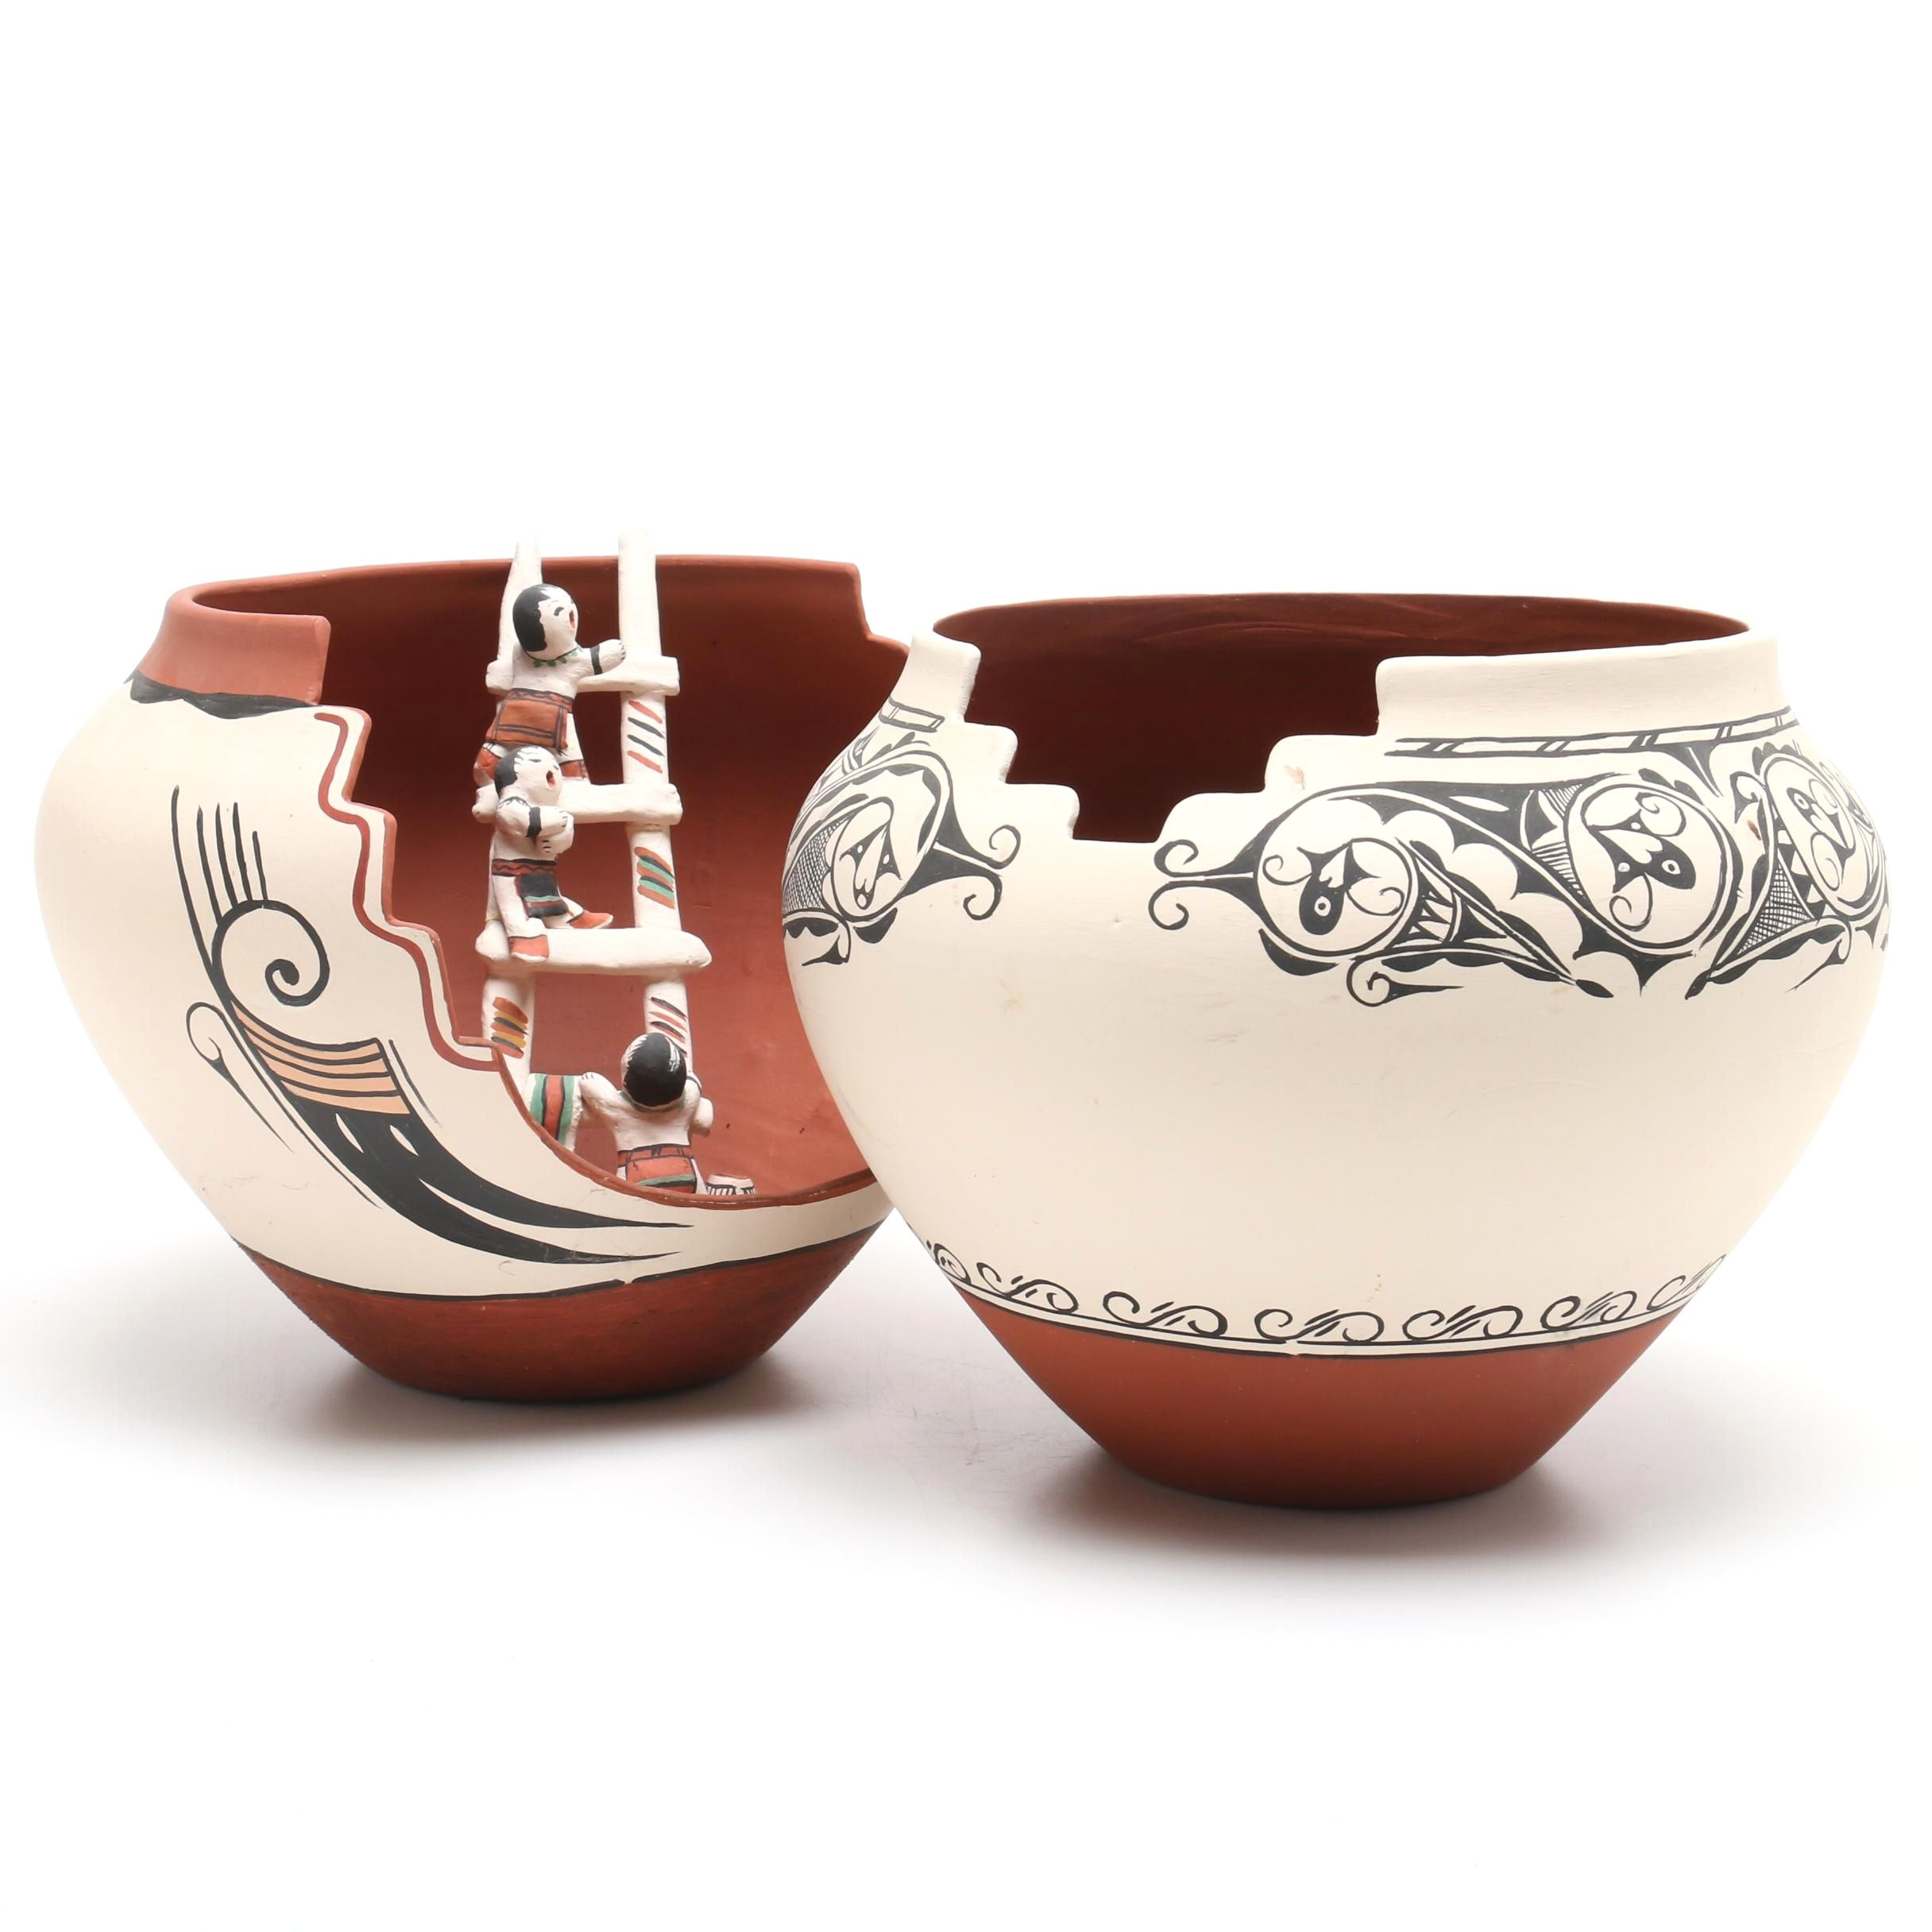 Josie Hand Cochito Hand-Painted Earthenware Ollas